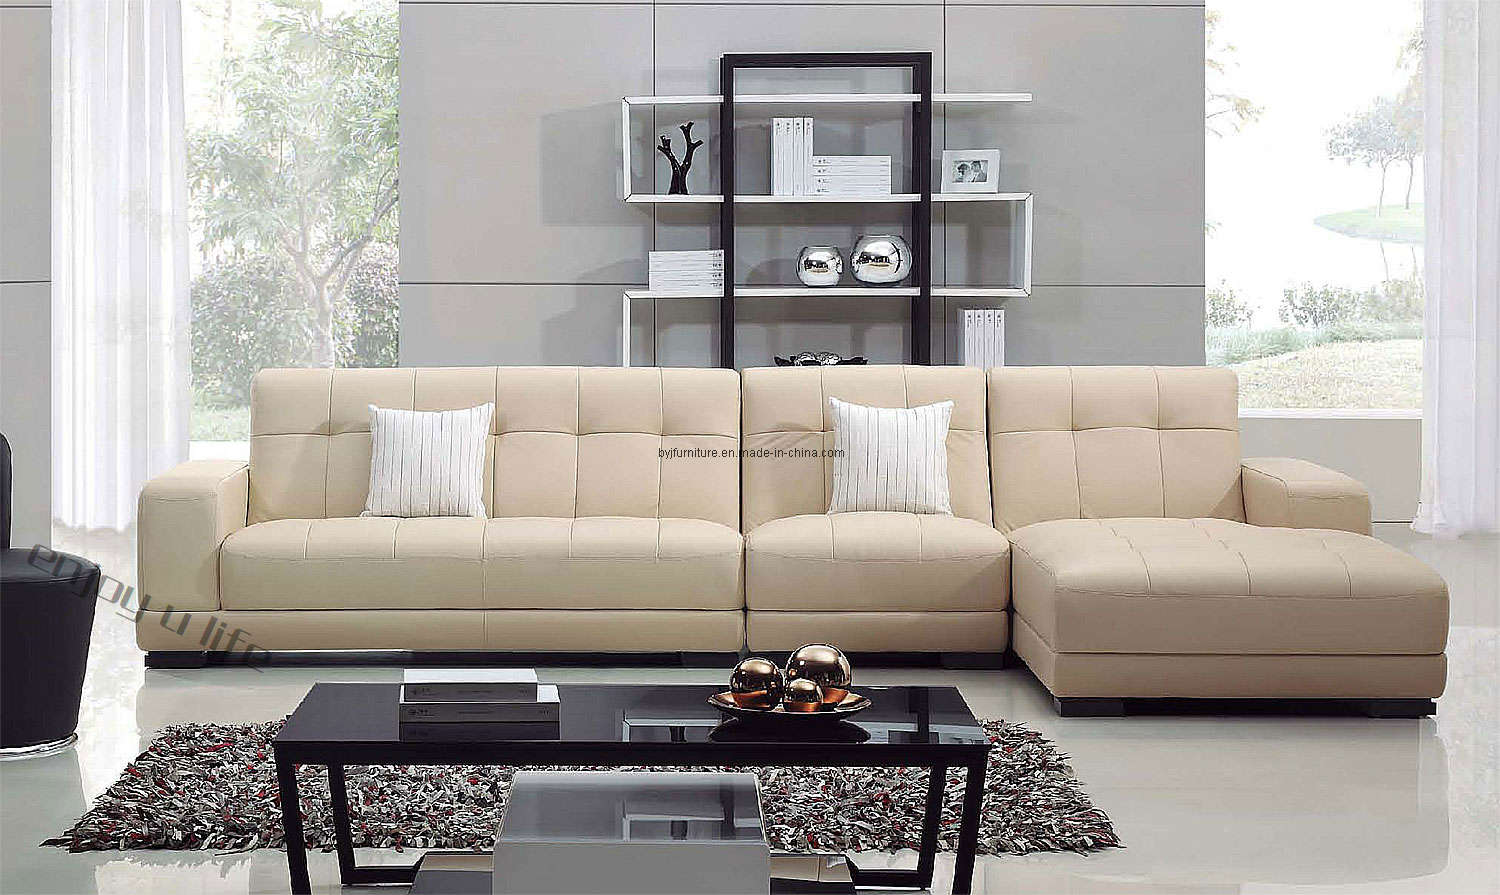 Get the full privilege of bed come sofa for your living room